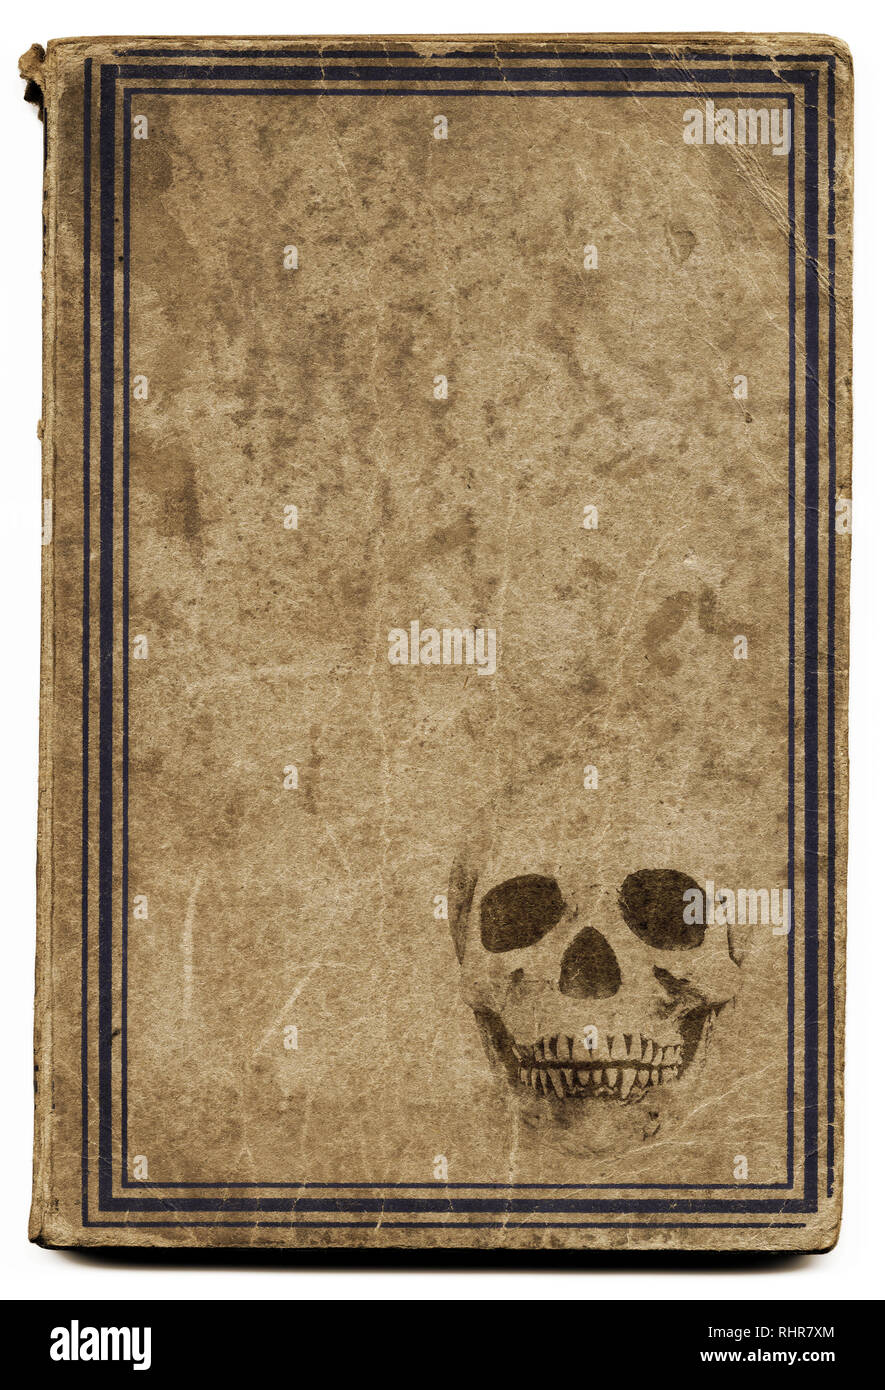 Very old brown book with framed cover with a stamped skull with plenty space for title such as witchcraft, etc... Good image for halloween. - Stock Image